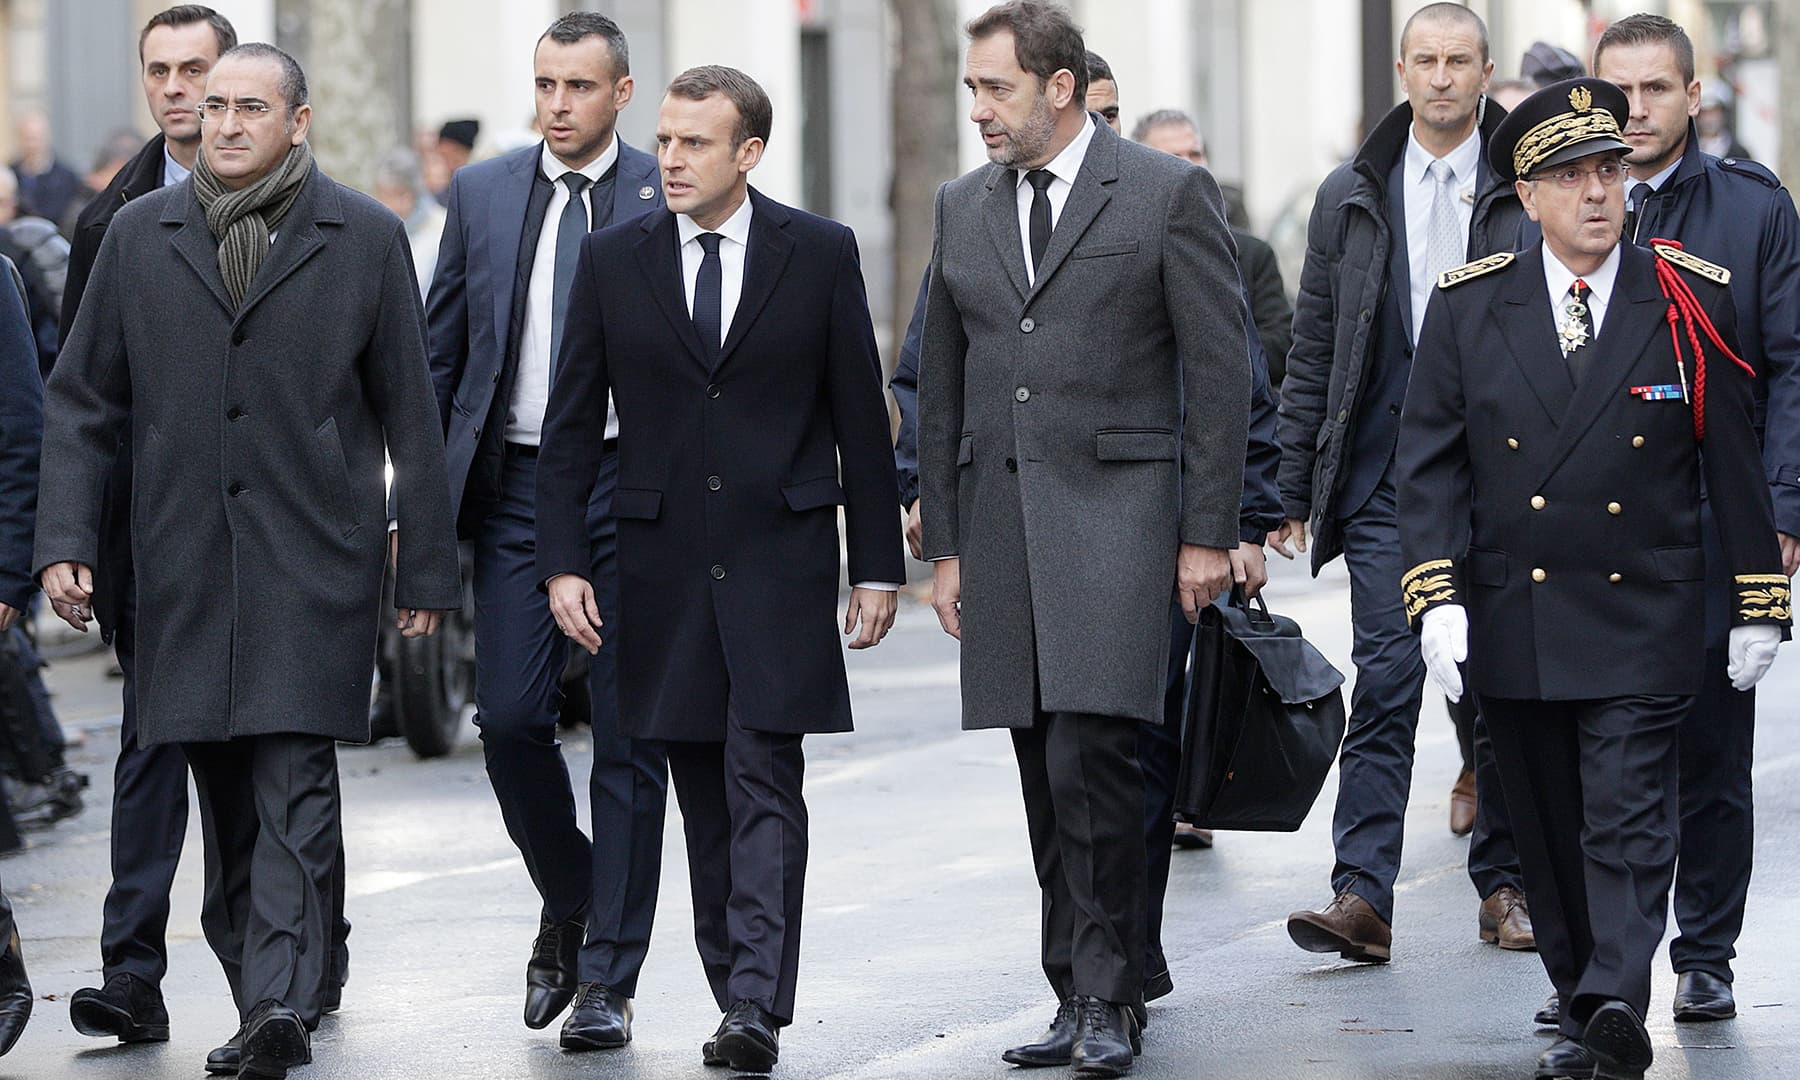 French President Emmanuel Macron (2ndL) flanked by Interior Minister Christophe Castaner (2ndR), Paris police prefect Michel Delpuech (R) and French Junior Minister attached to the Interior Ministry Laurent Nunez (L) surveying the damage. —AFP